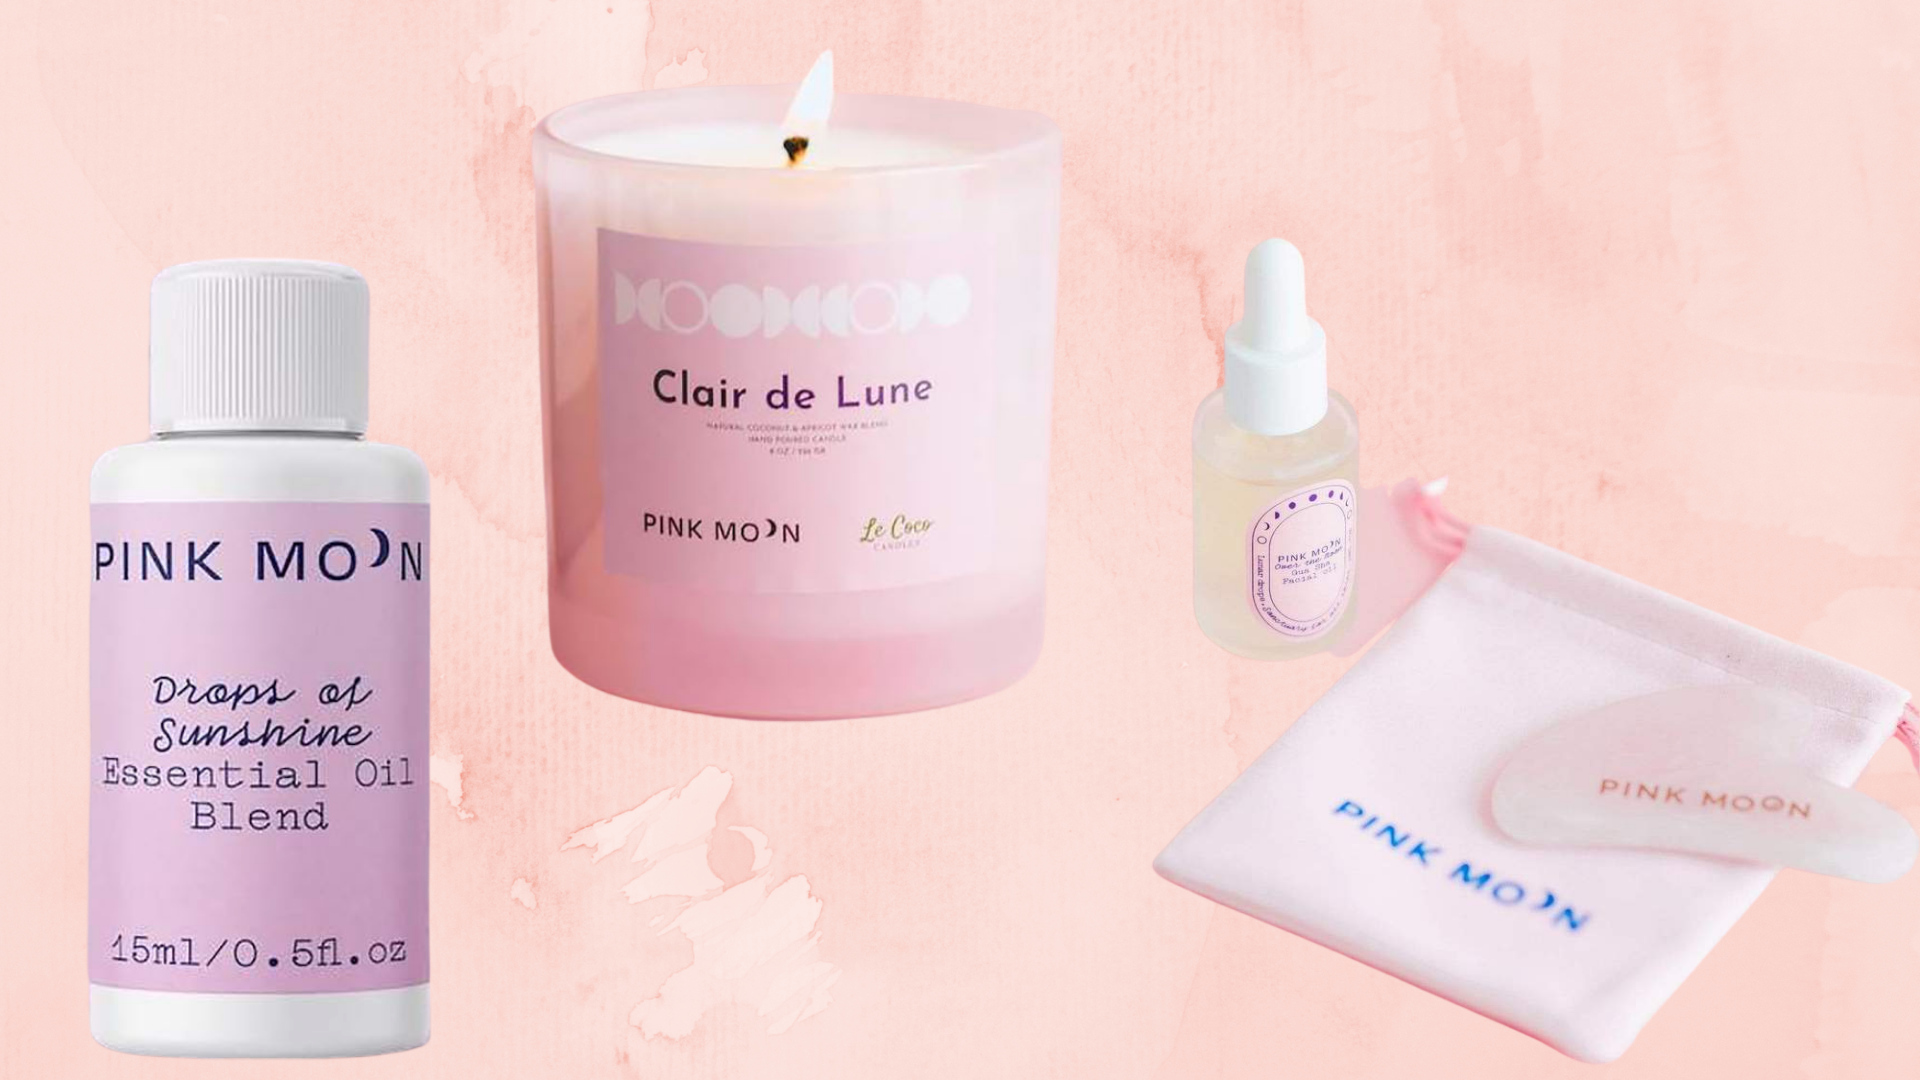 Feeling Stressed? These Pink Moon Products Will Ease Your Tension